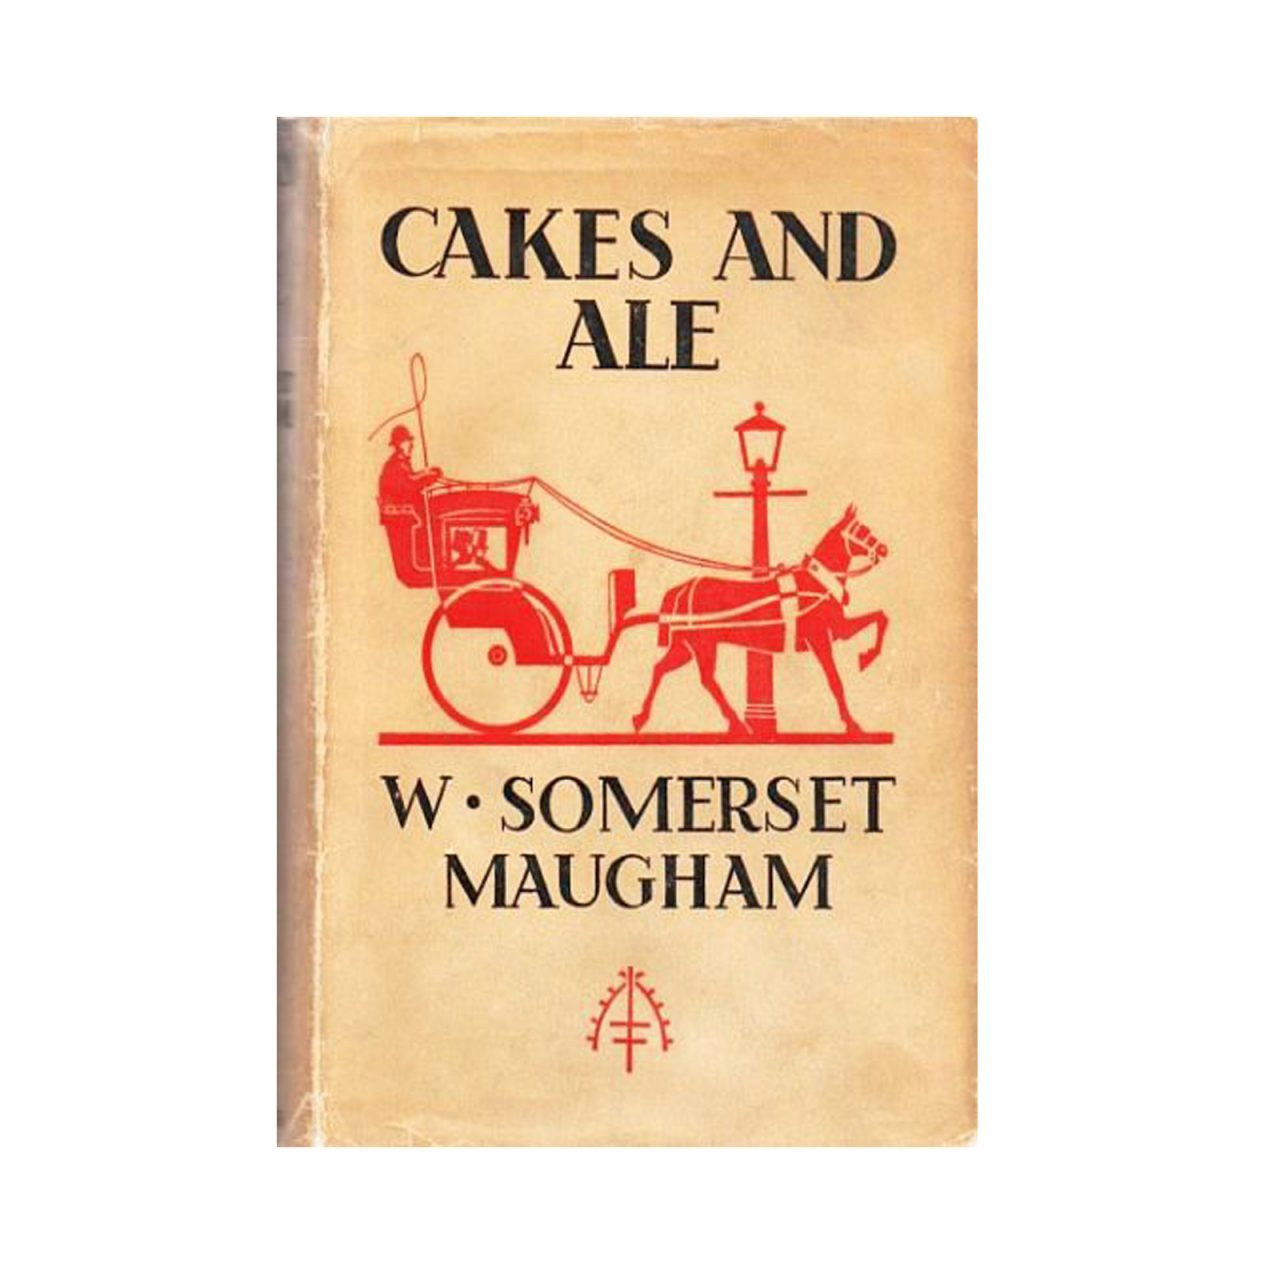 A Reader's Guide to W.Somerset Maugham & 'Cakes and Ale'